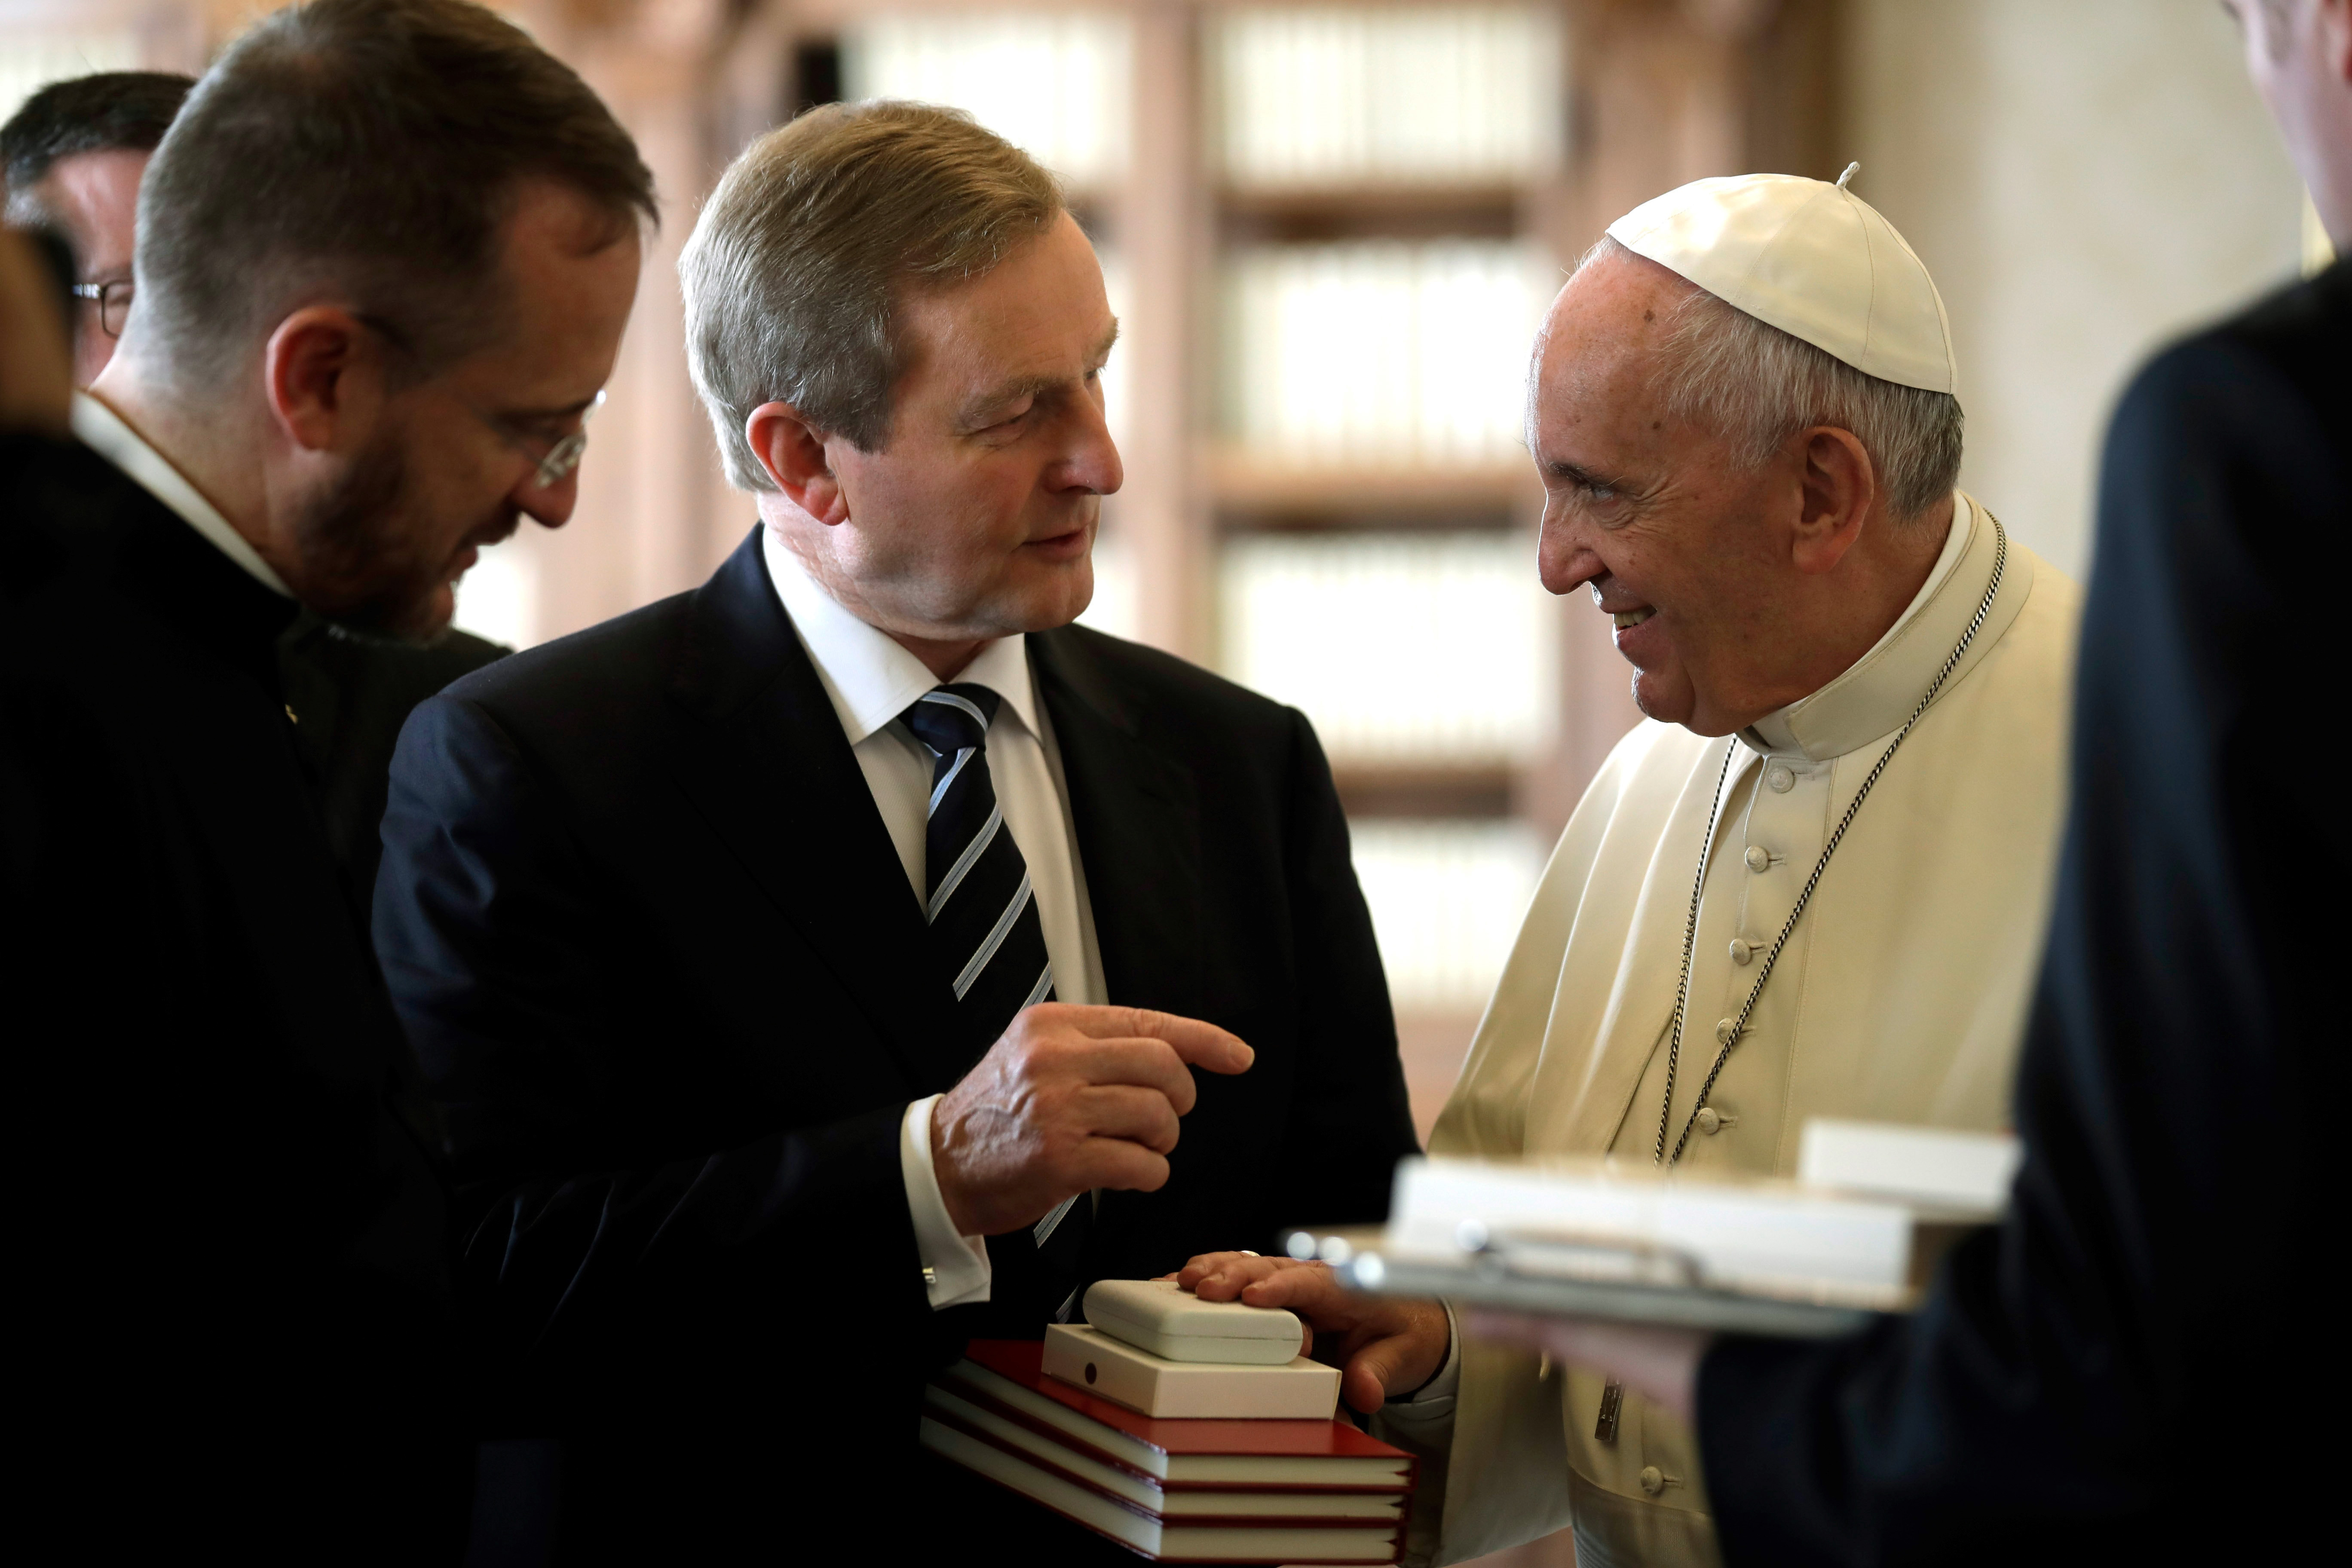 Pope Francis (R) talks with Irish Prime Minister Enda Kenny during a private audience on November 28, 2016 at the Vatican.